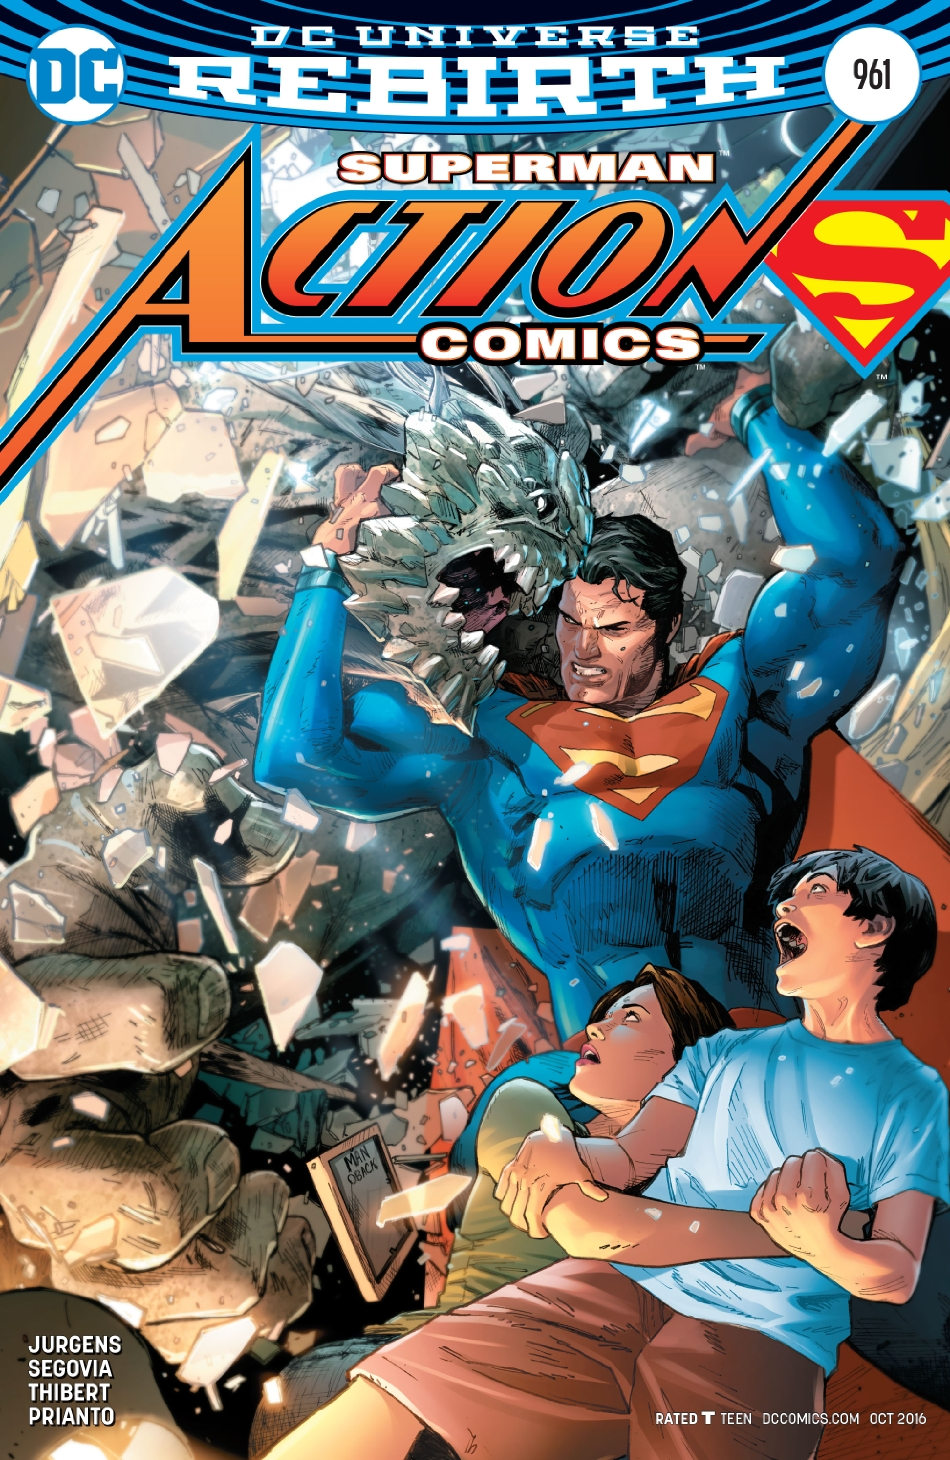 Action Comics Vol 1 961